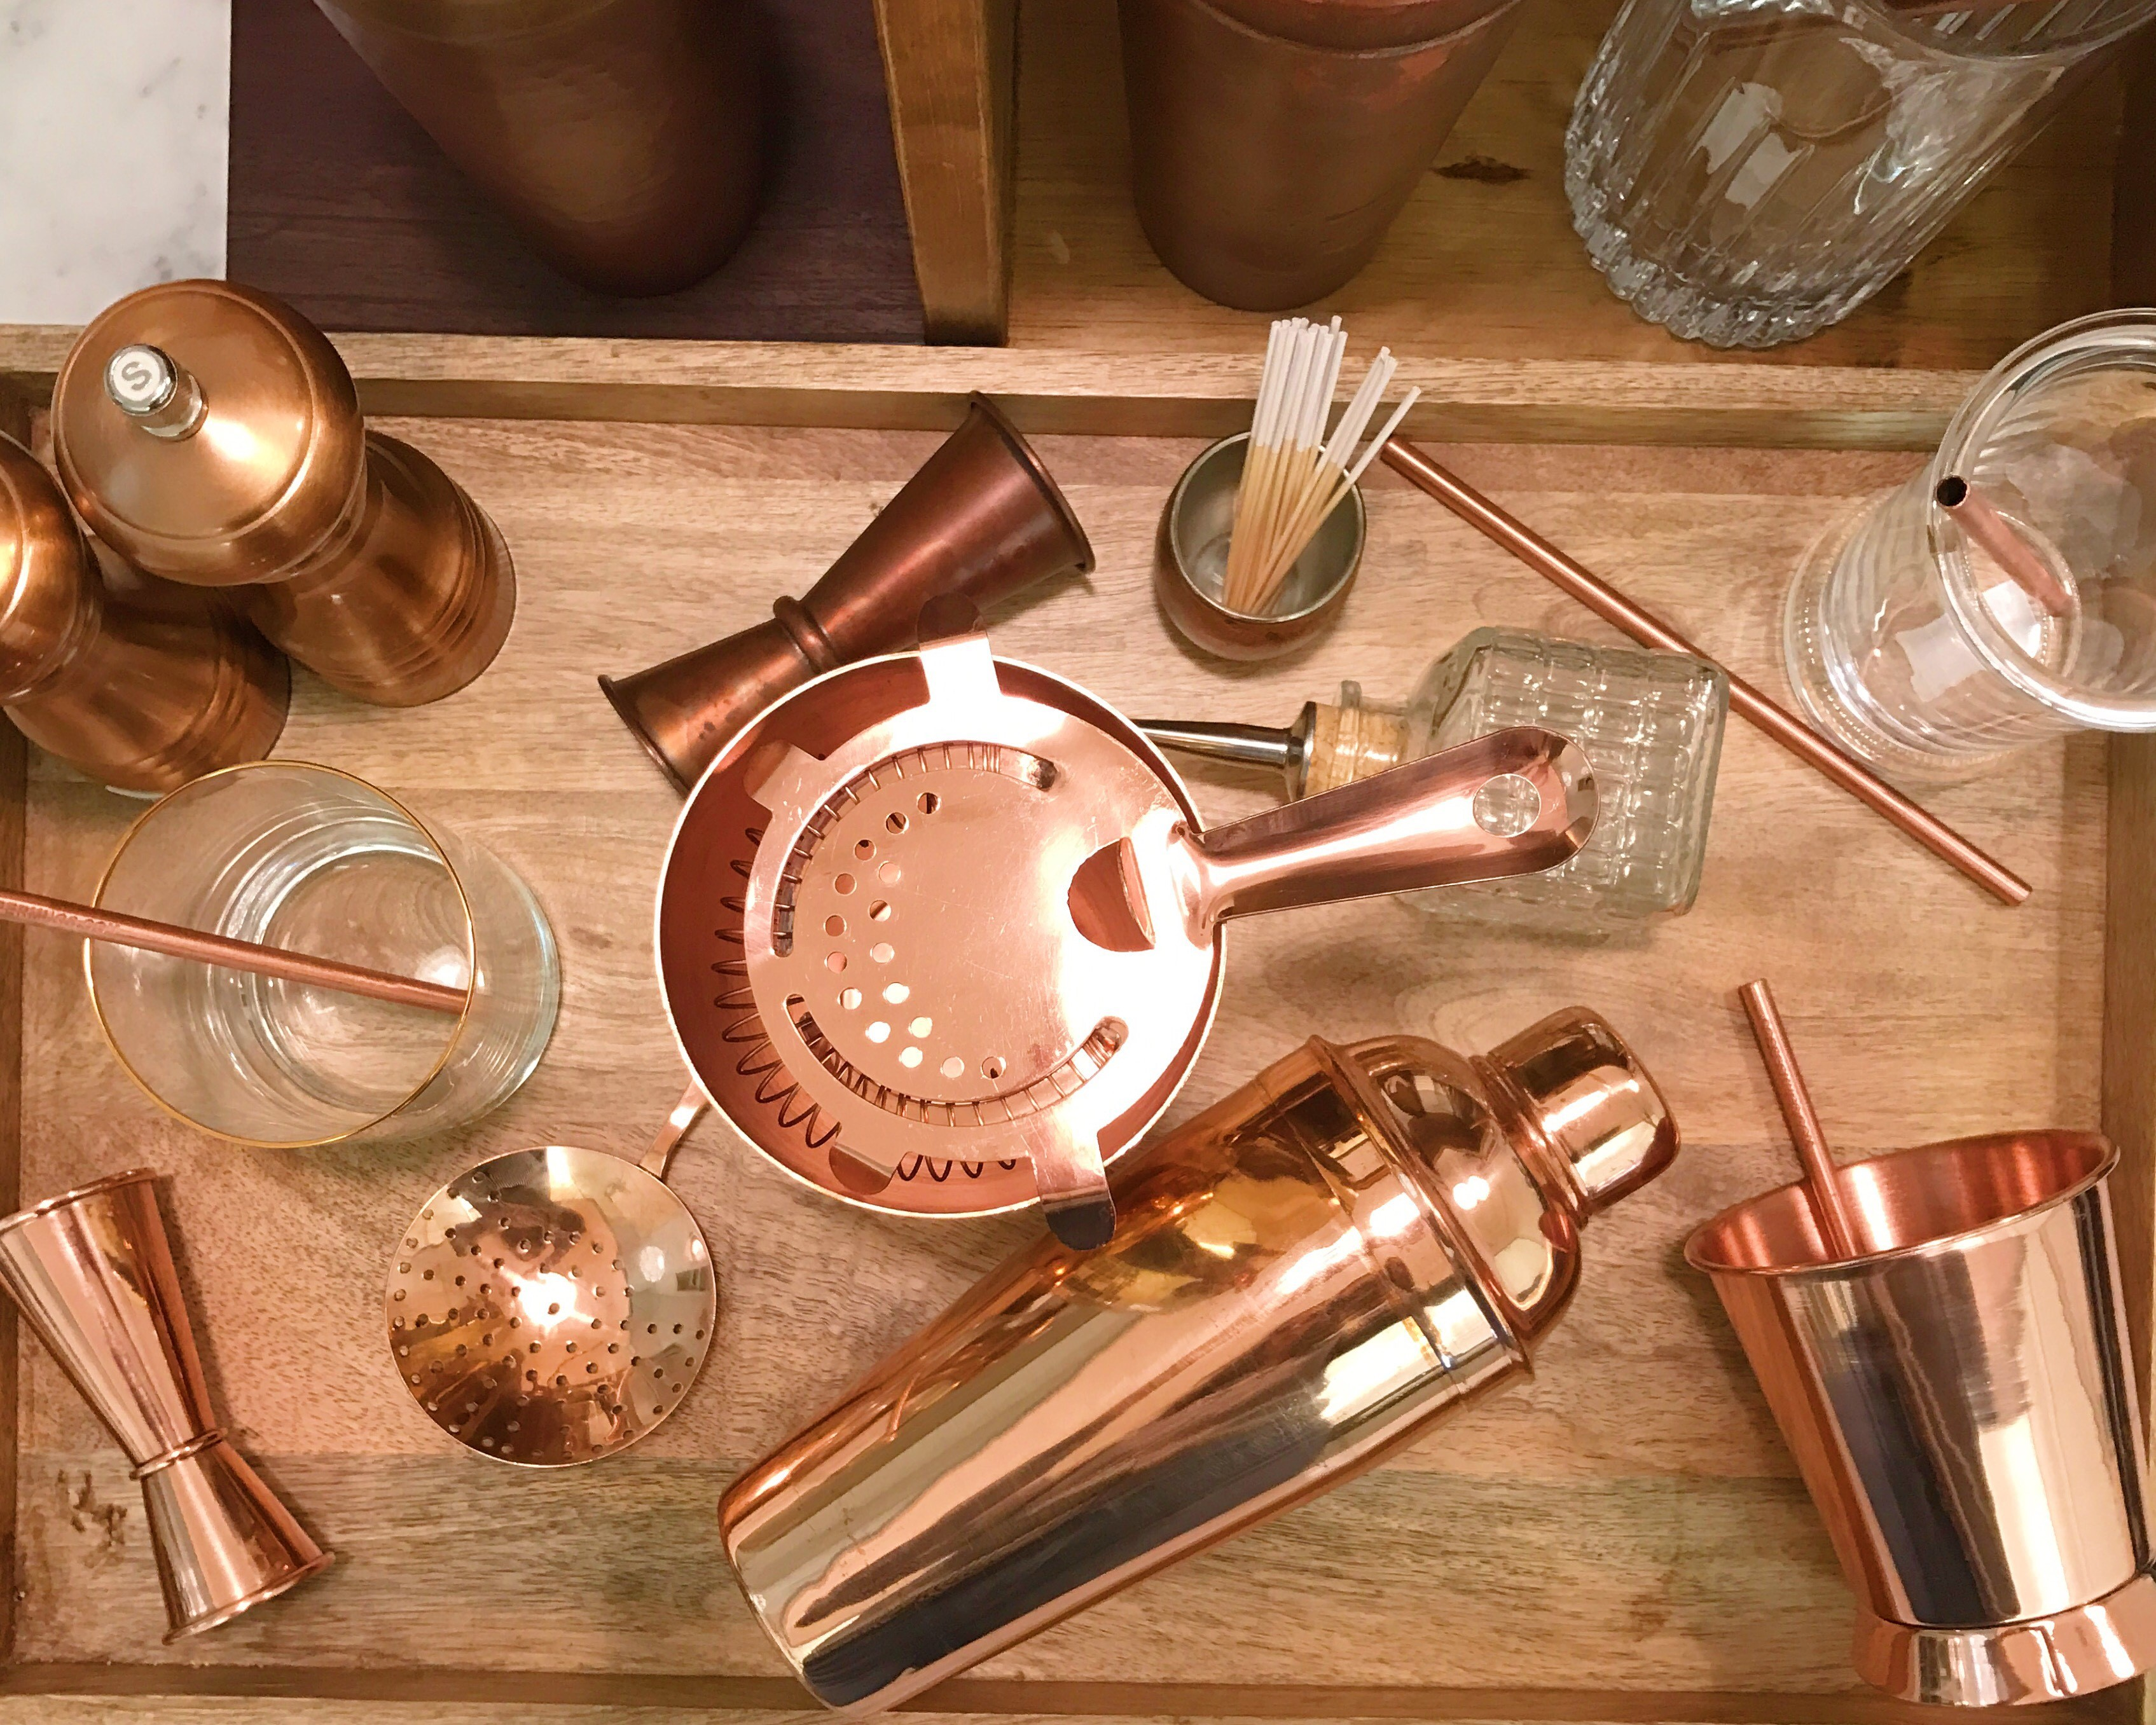 Little M Tucker is ready to ship a fantastic new collection of copper barwares for cocktail service that is sure to spice up your hospitality offering.